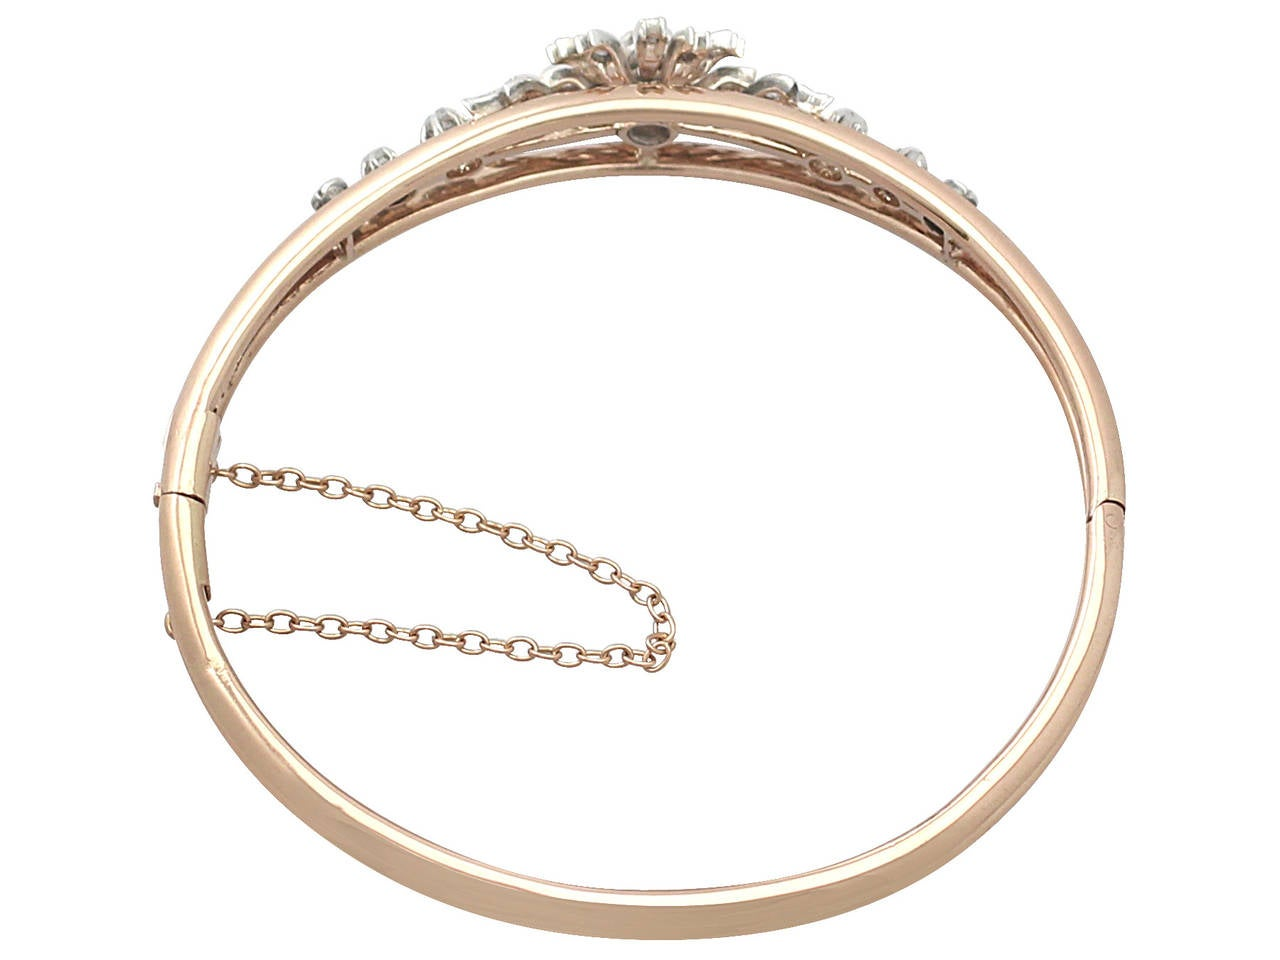 0.62Ct Diamond & 18k Rose Gold, Silver Set Bangle - Antique French Circa 1900 4